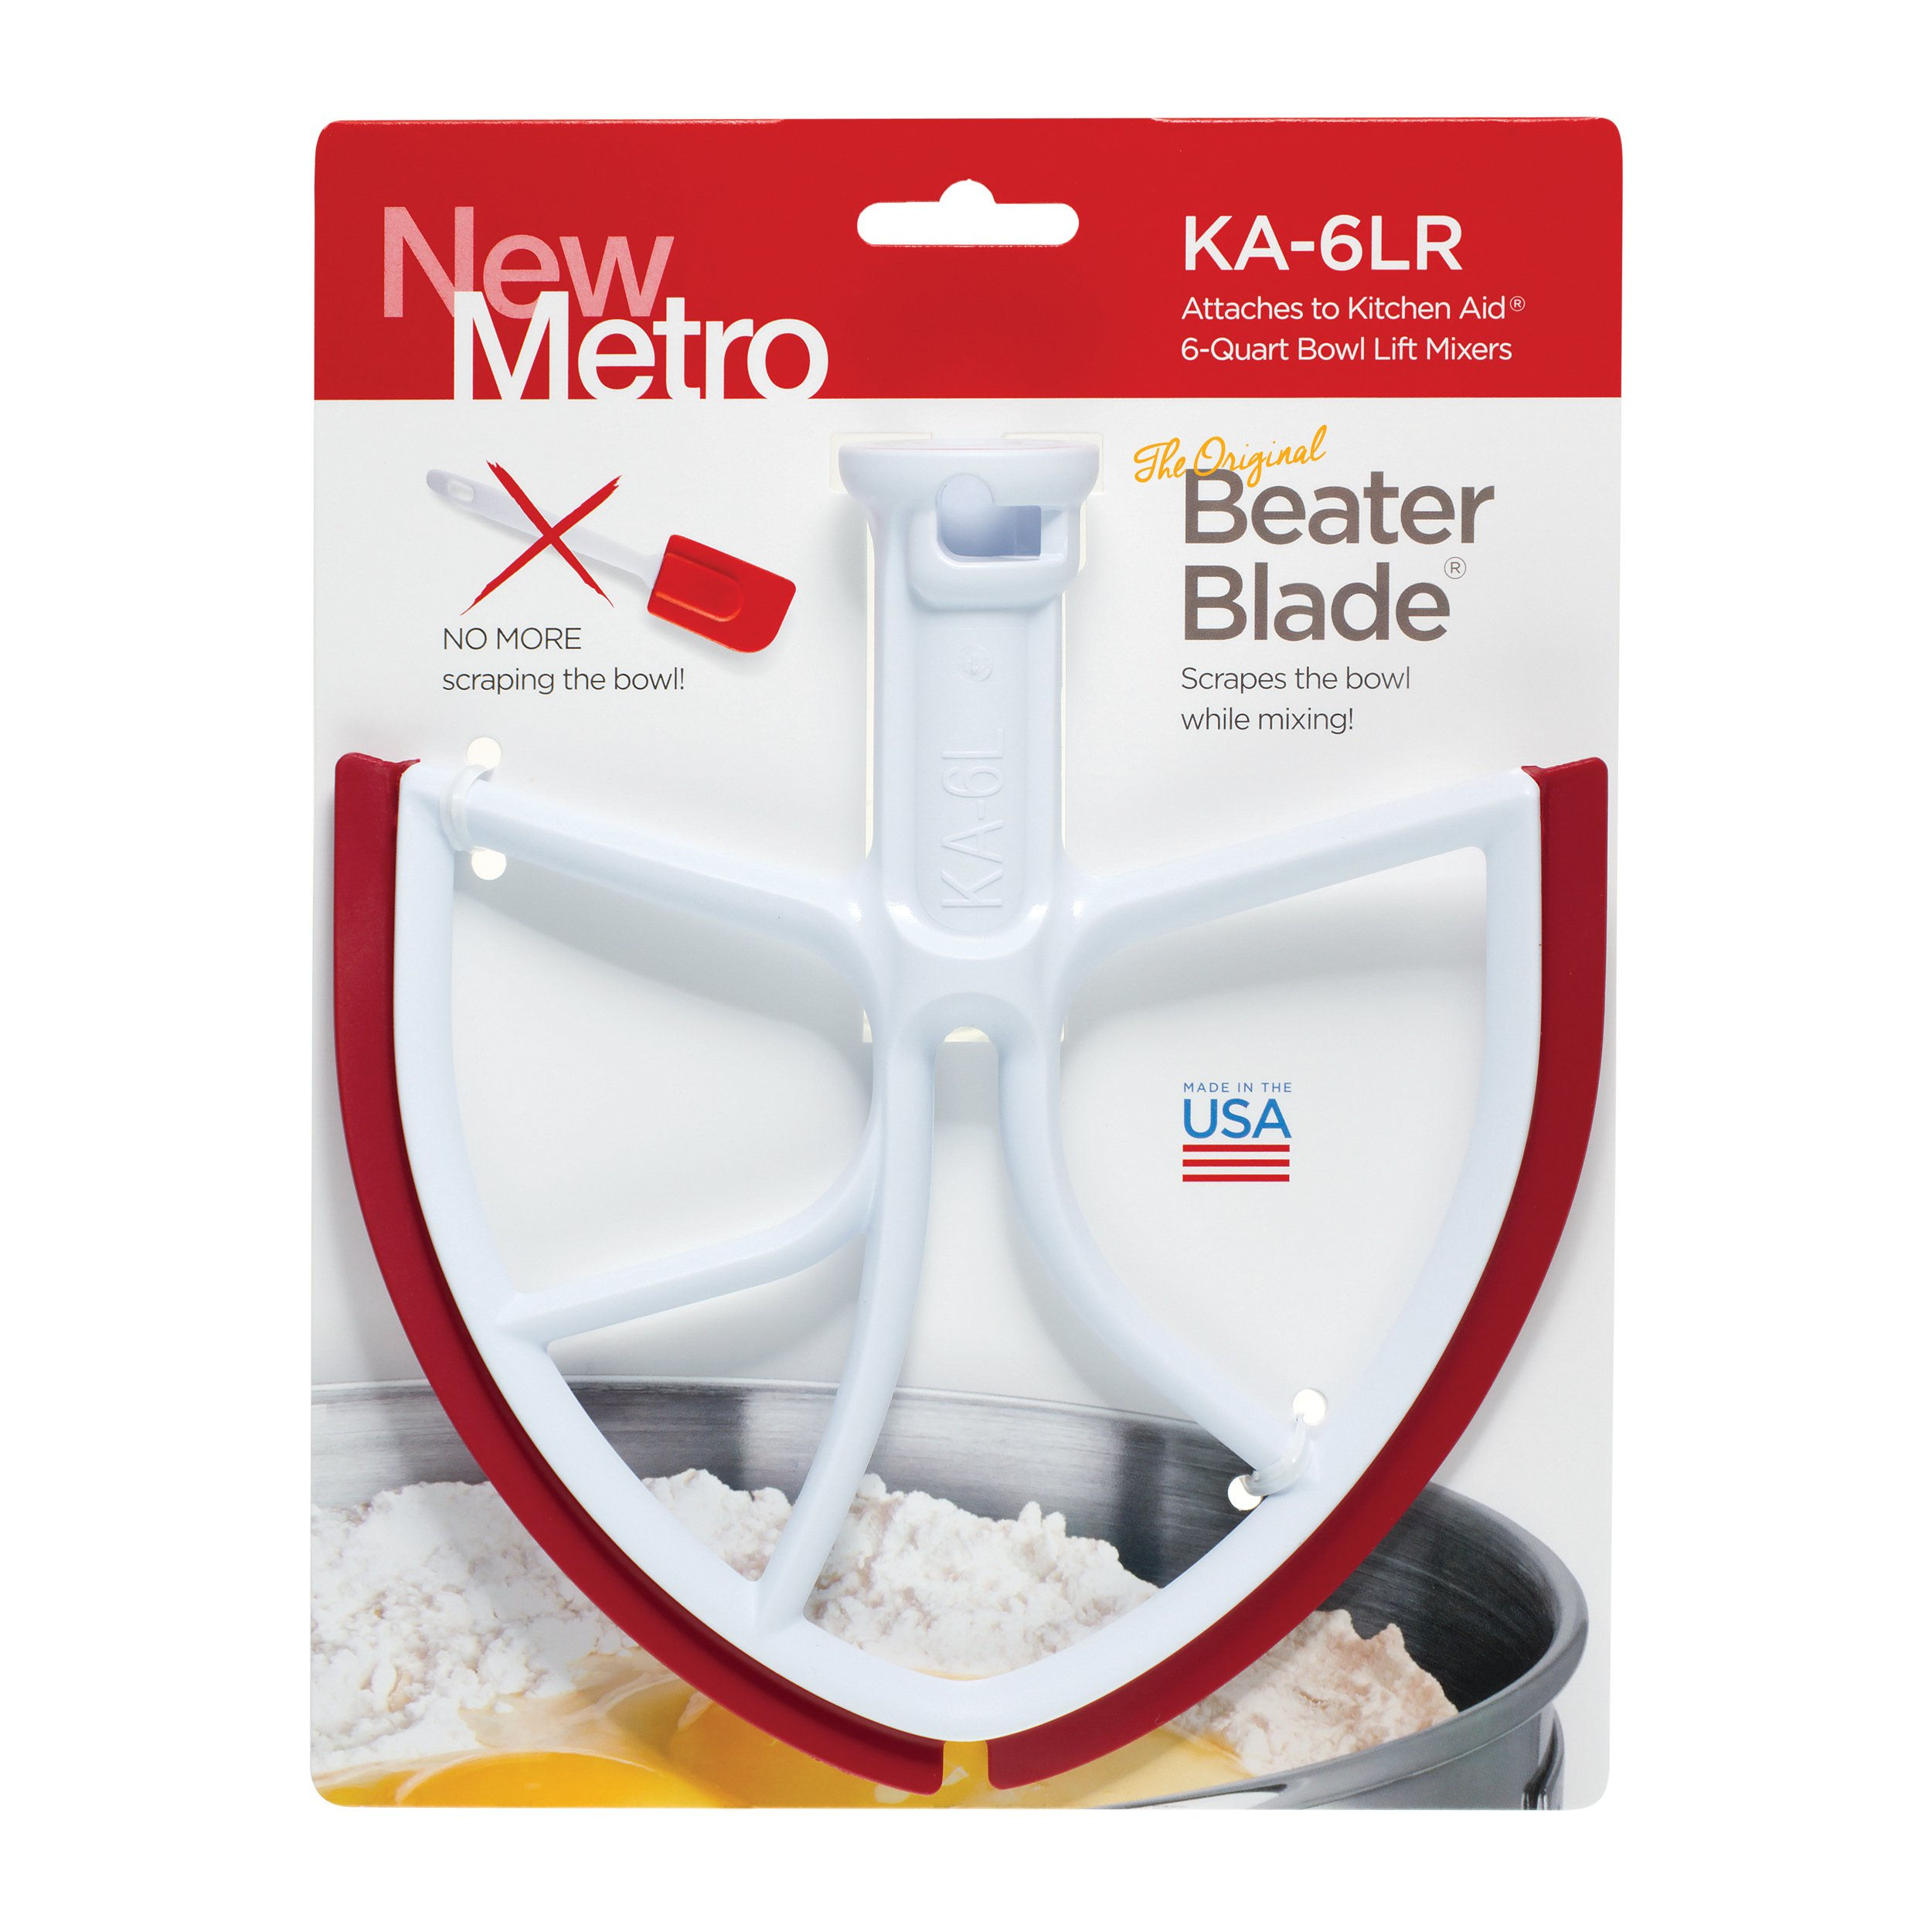 Original Beater Blade for KitchenAid 6-Quart Bowl Lift Mixer, KA-6LR, Red, Made in USA